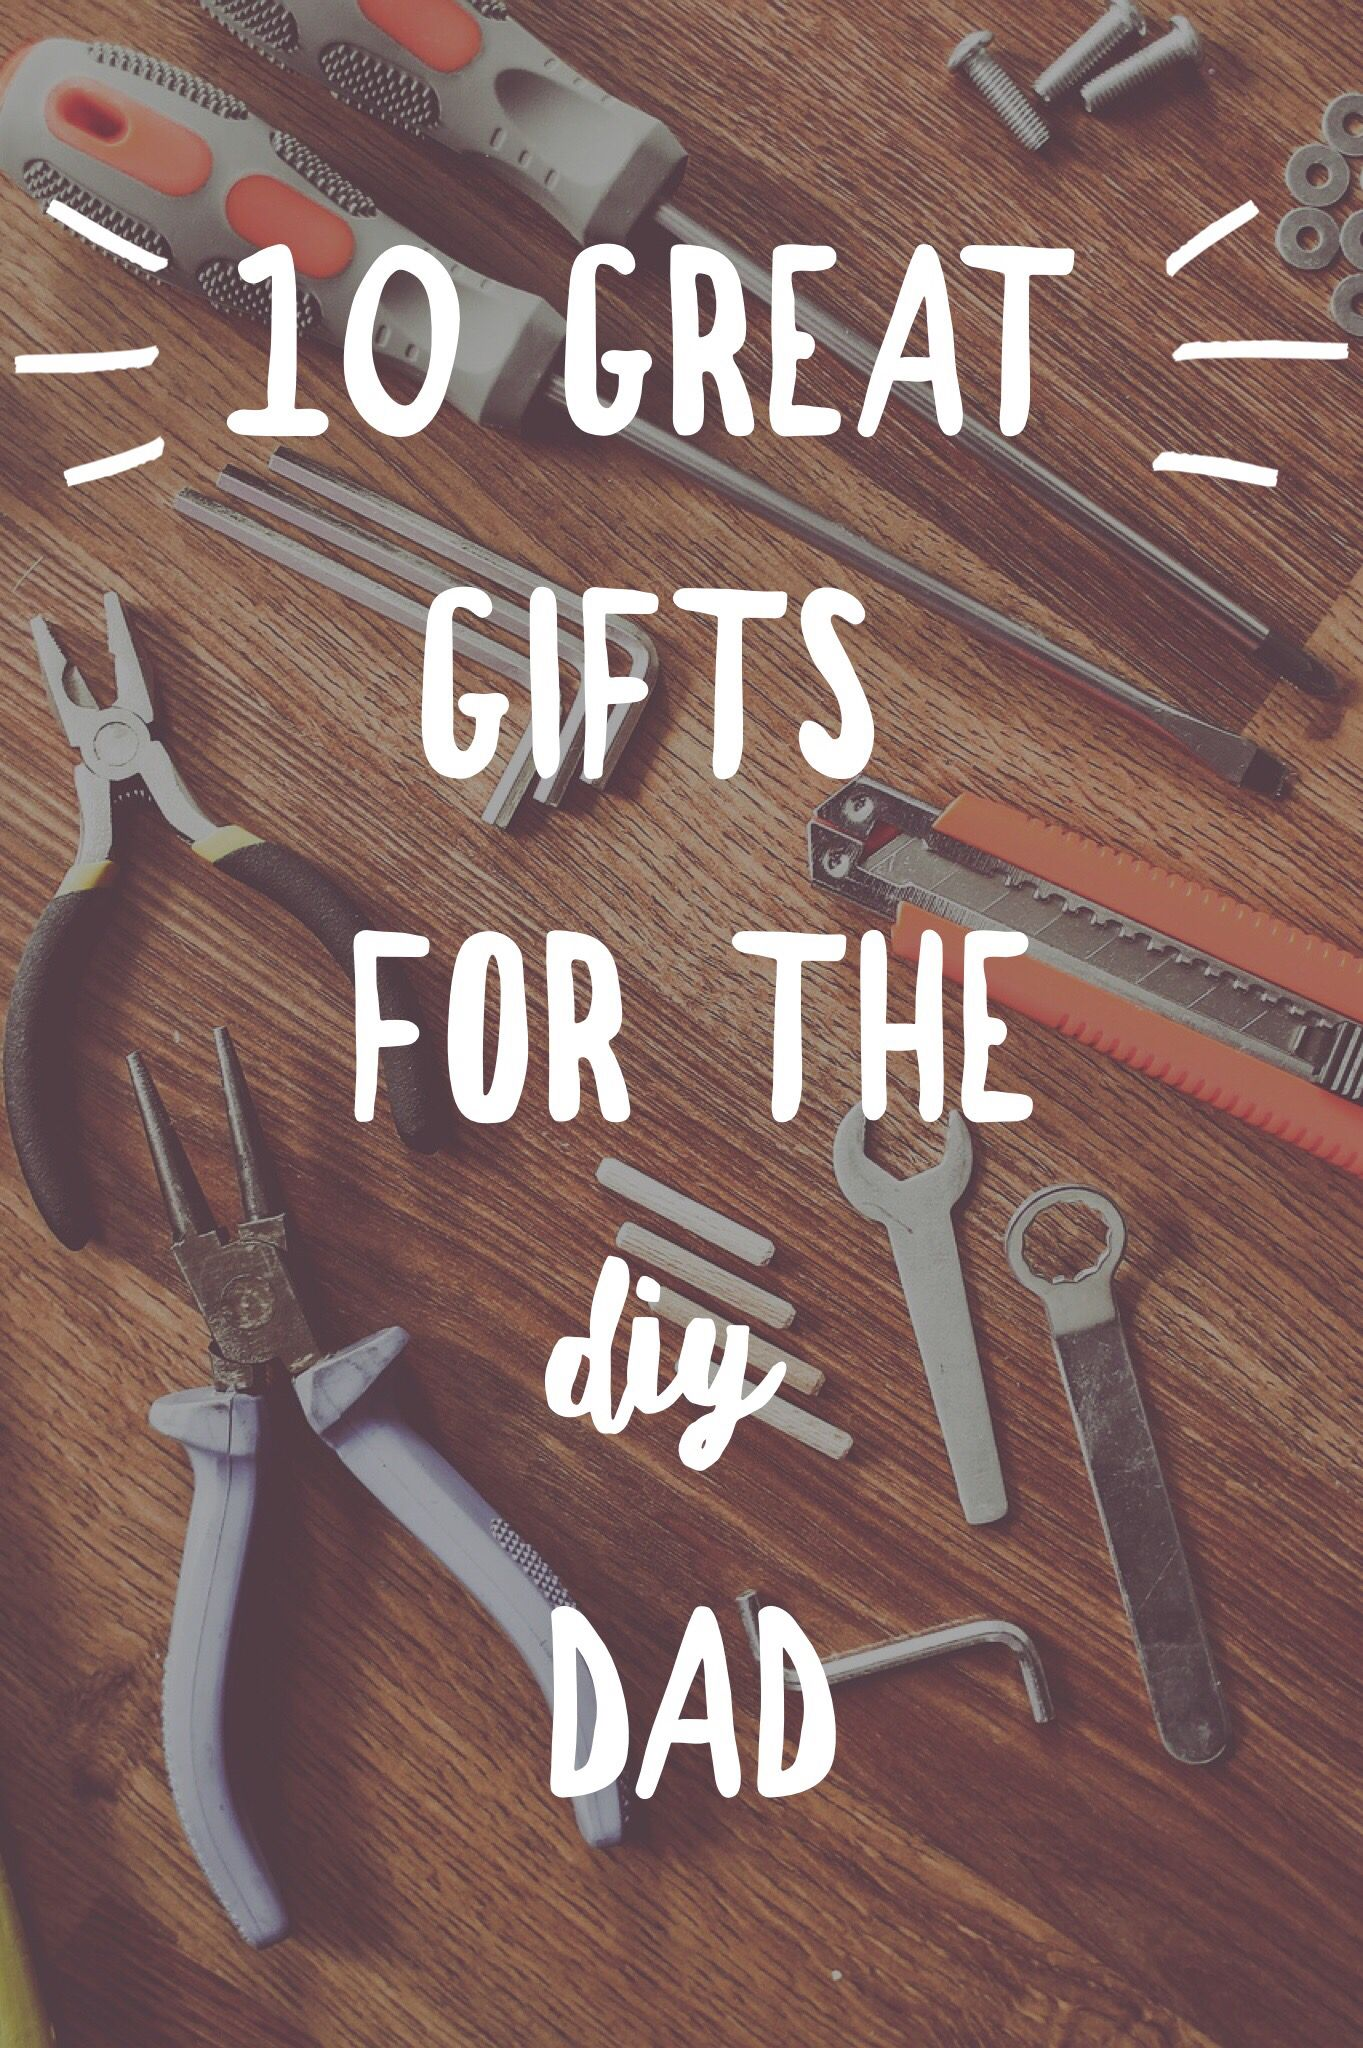 Find Unique Woodworking And DIY Gifts Diy Christmasgifts Birthdaygifts